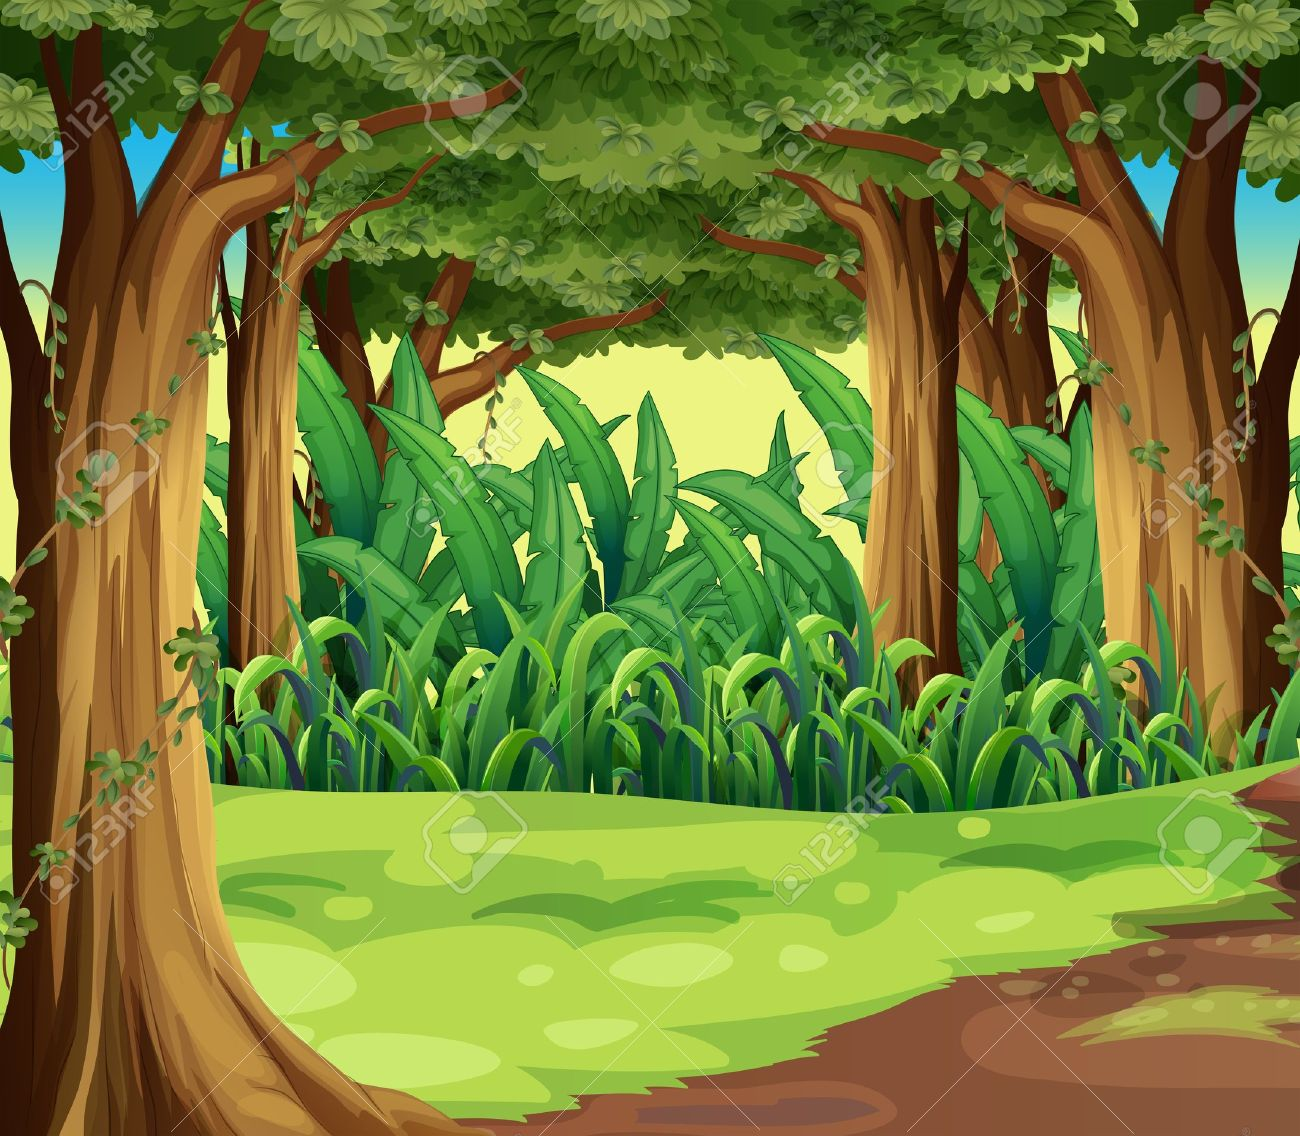 hight resolution of forest cliparts